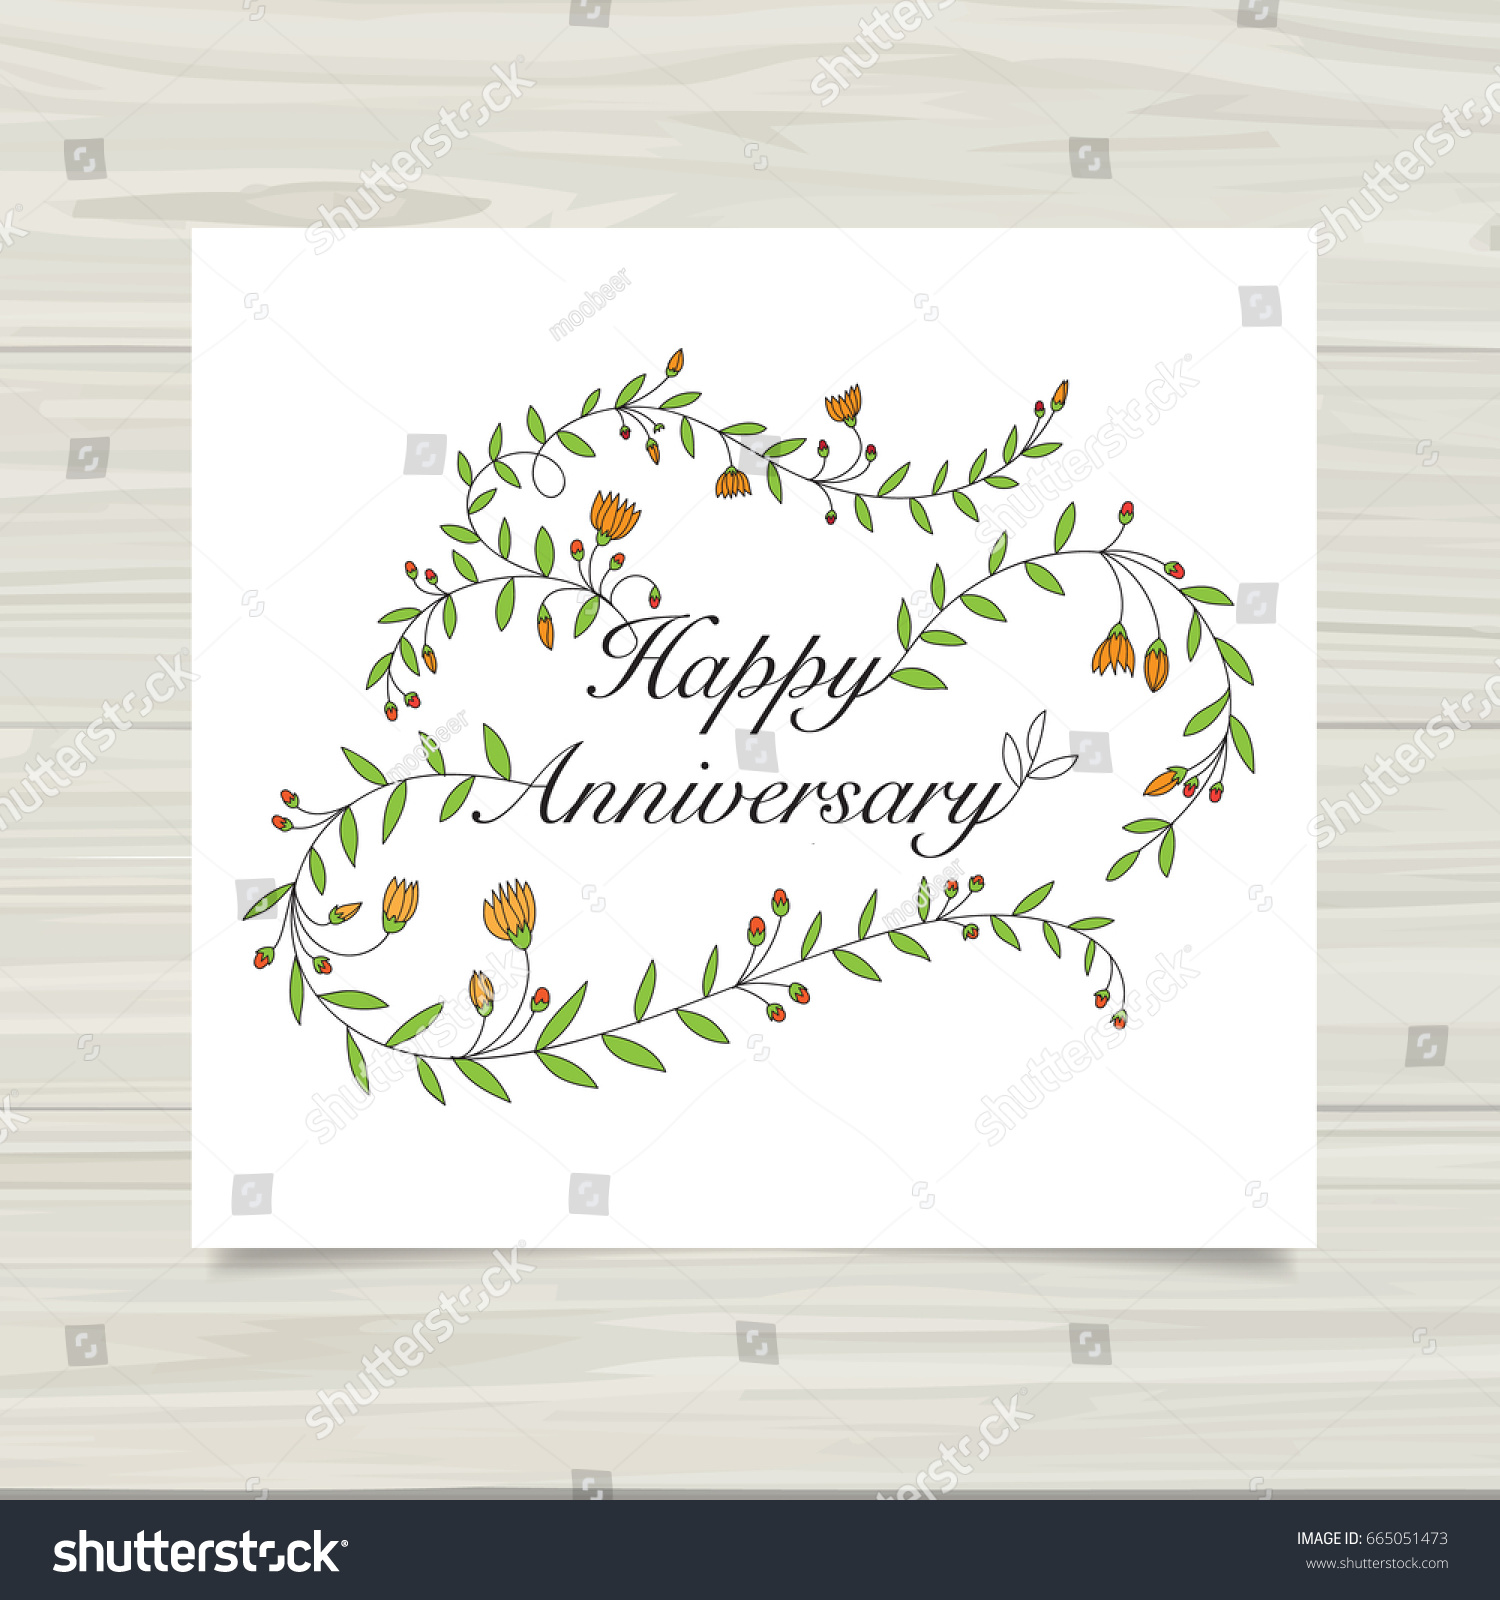 Happy Anniversary Card Template Stock Vector Royalty Free